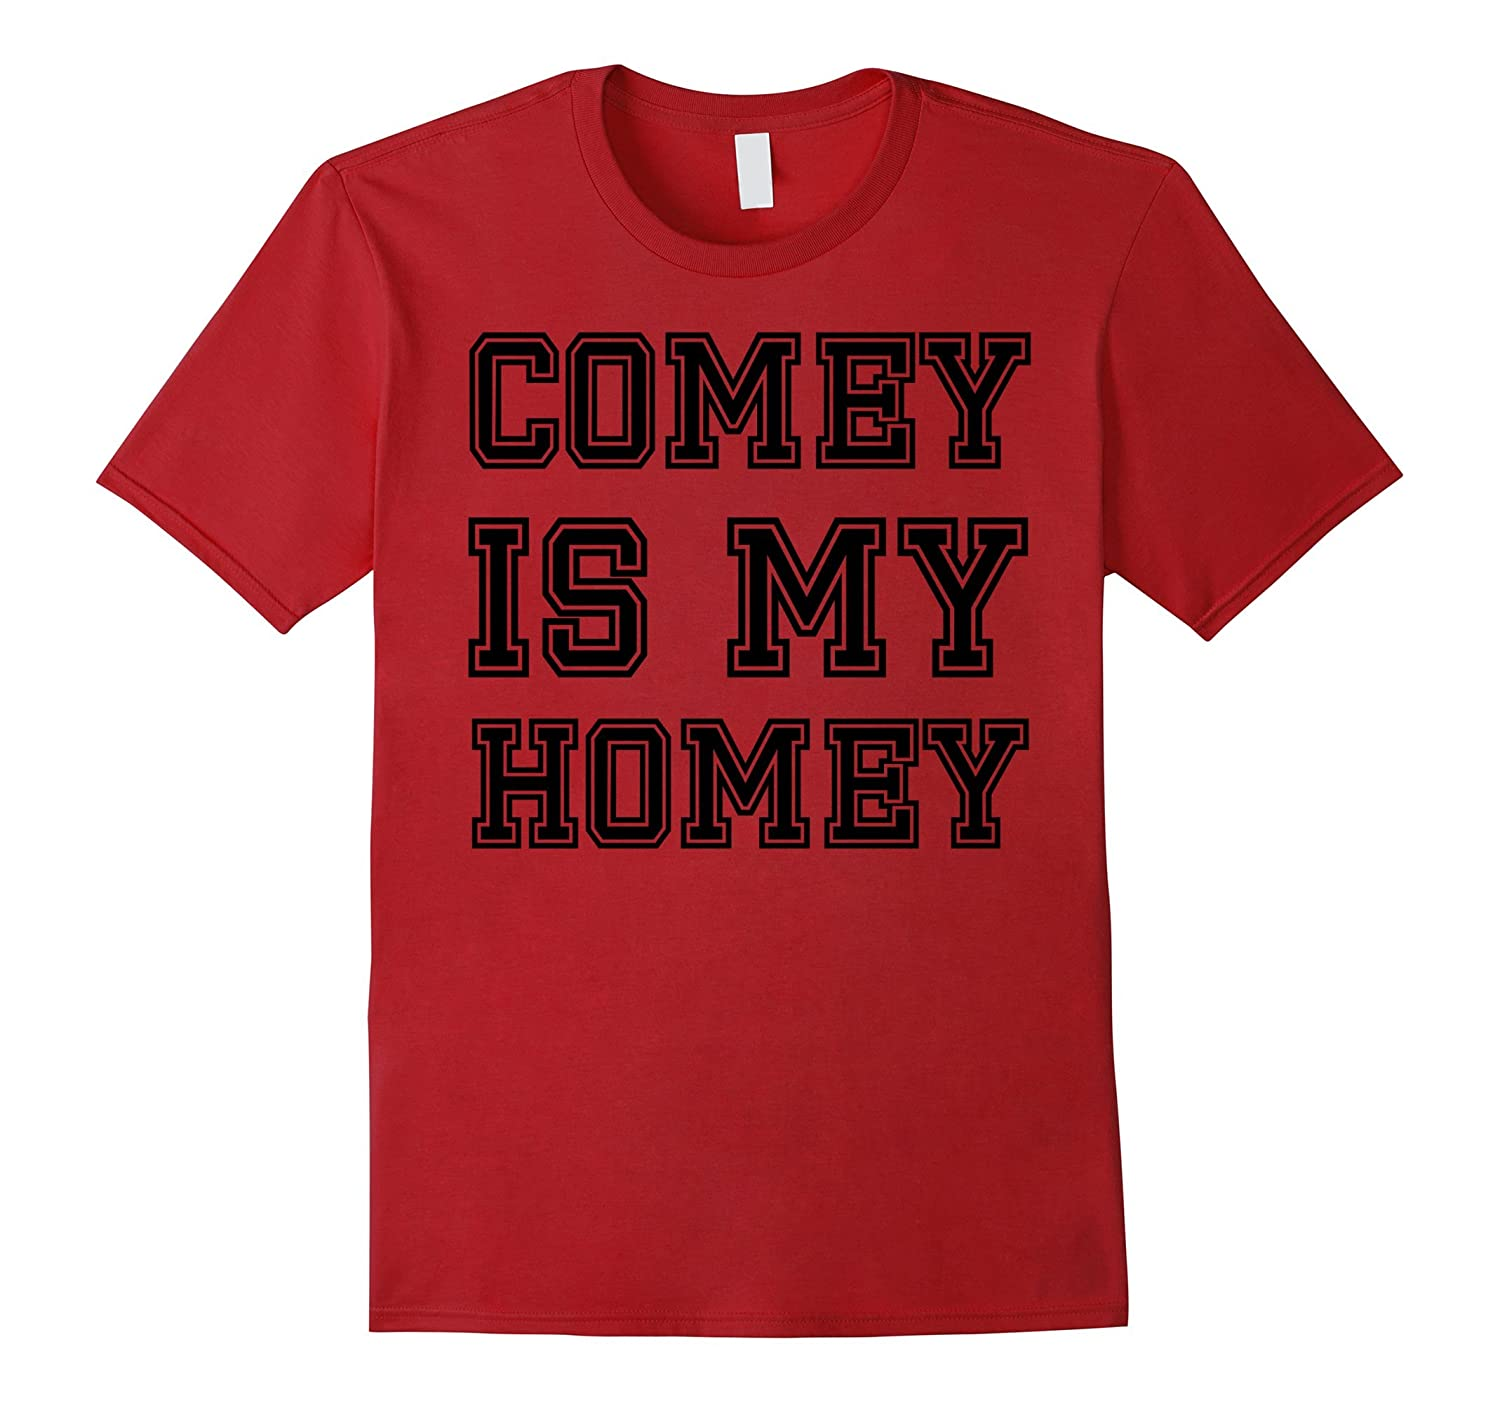 Cute Design t shirt for Comey is My Homie TShirt